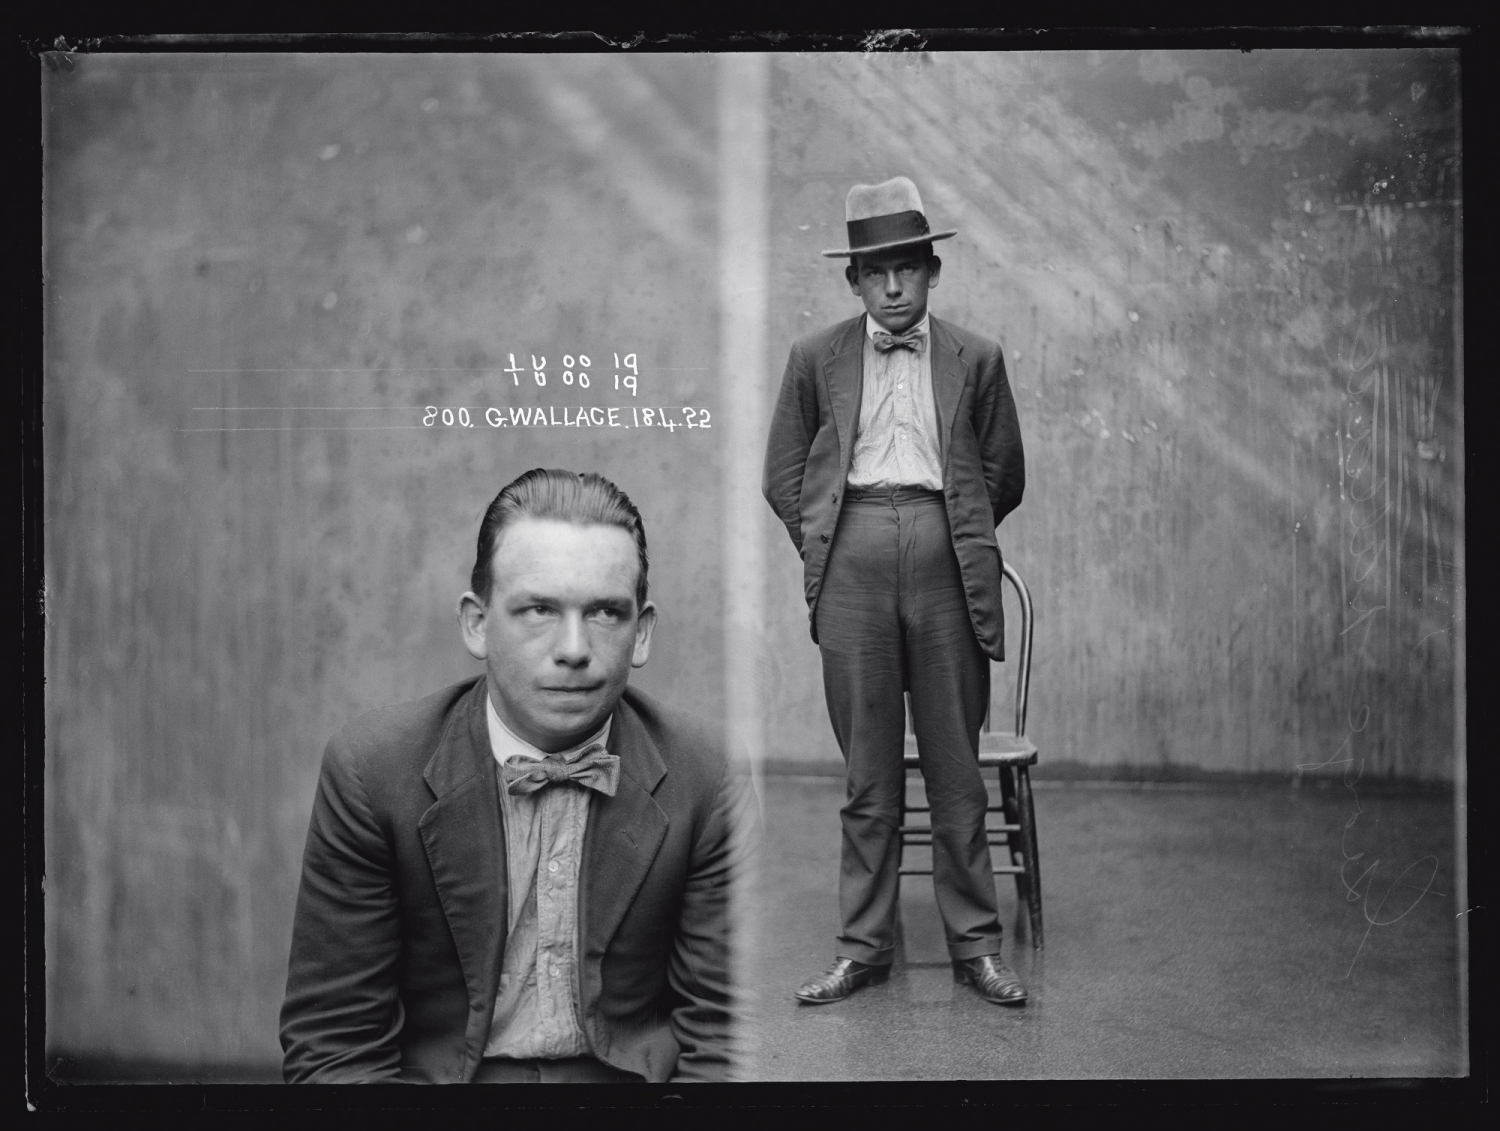 Black & white dual mugshot, with man seated (left) and standng (right), with inscription.